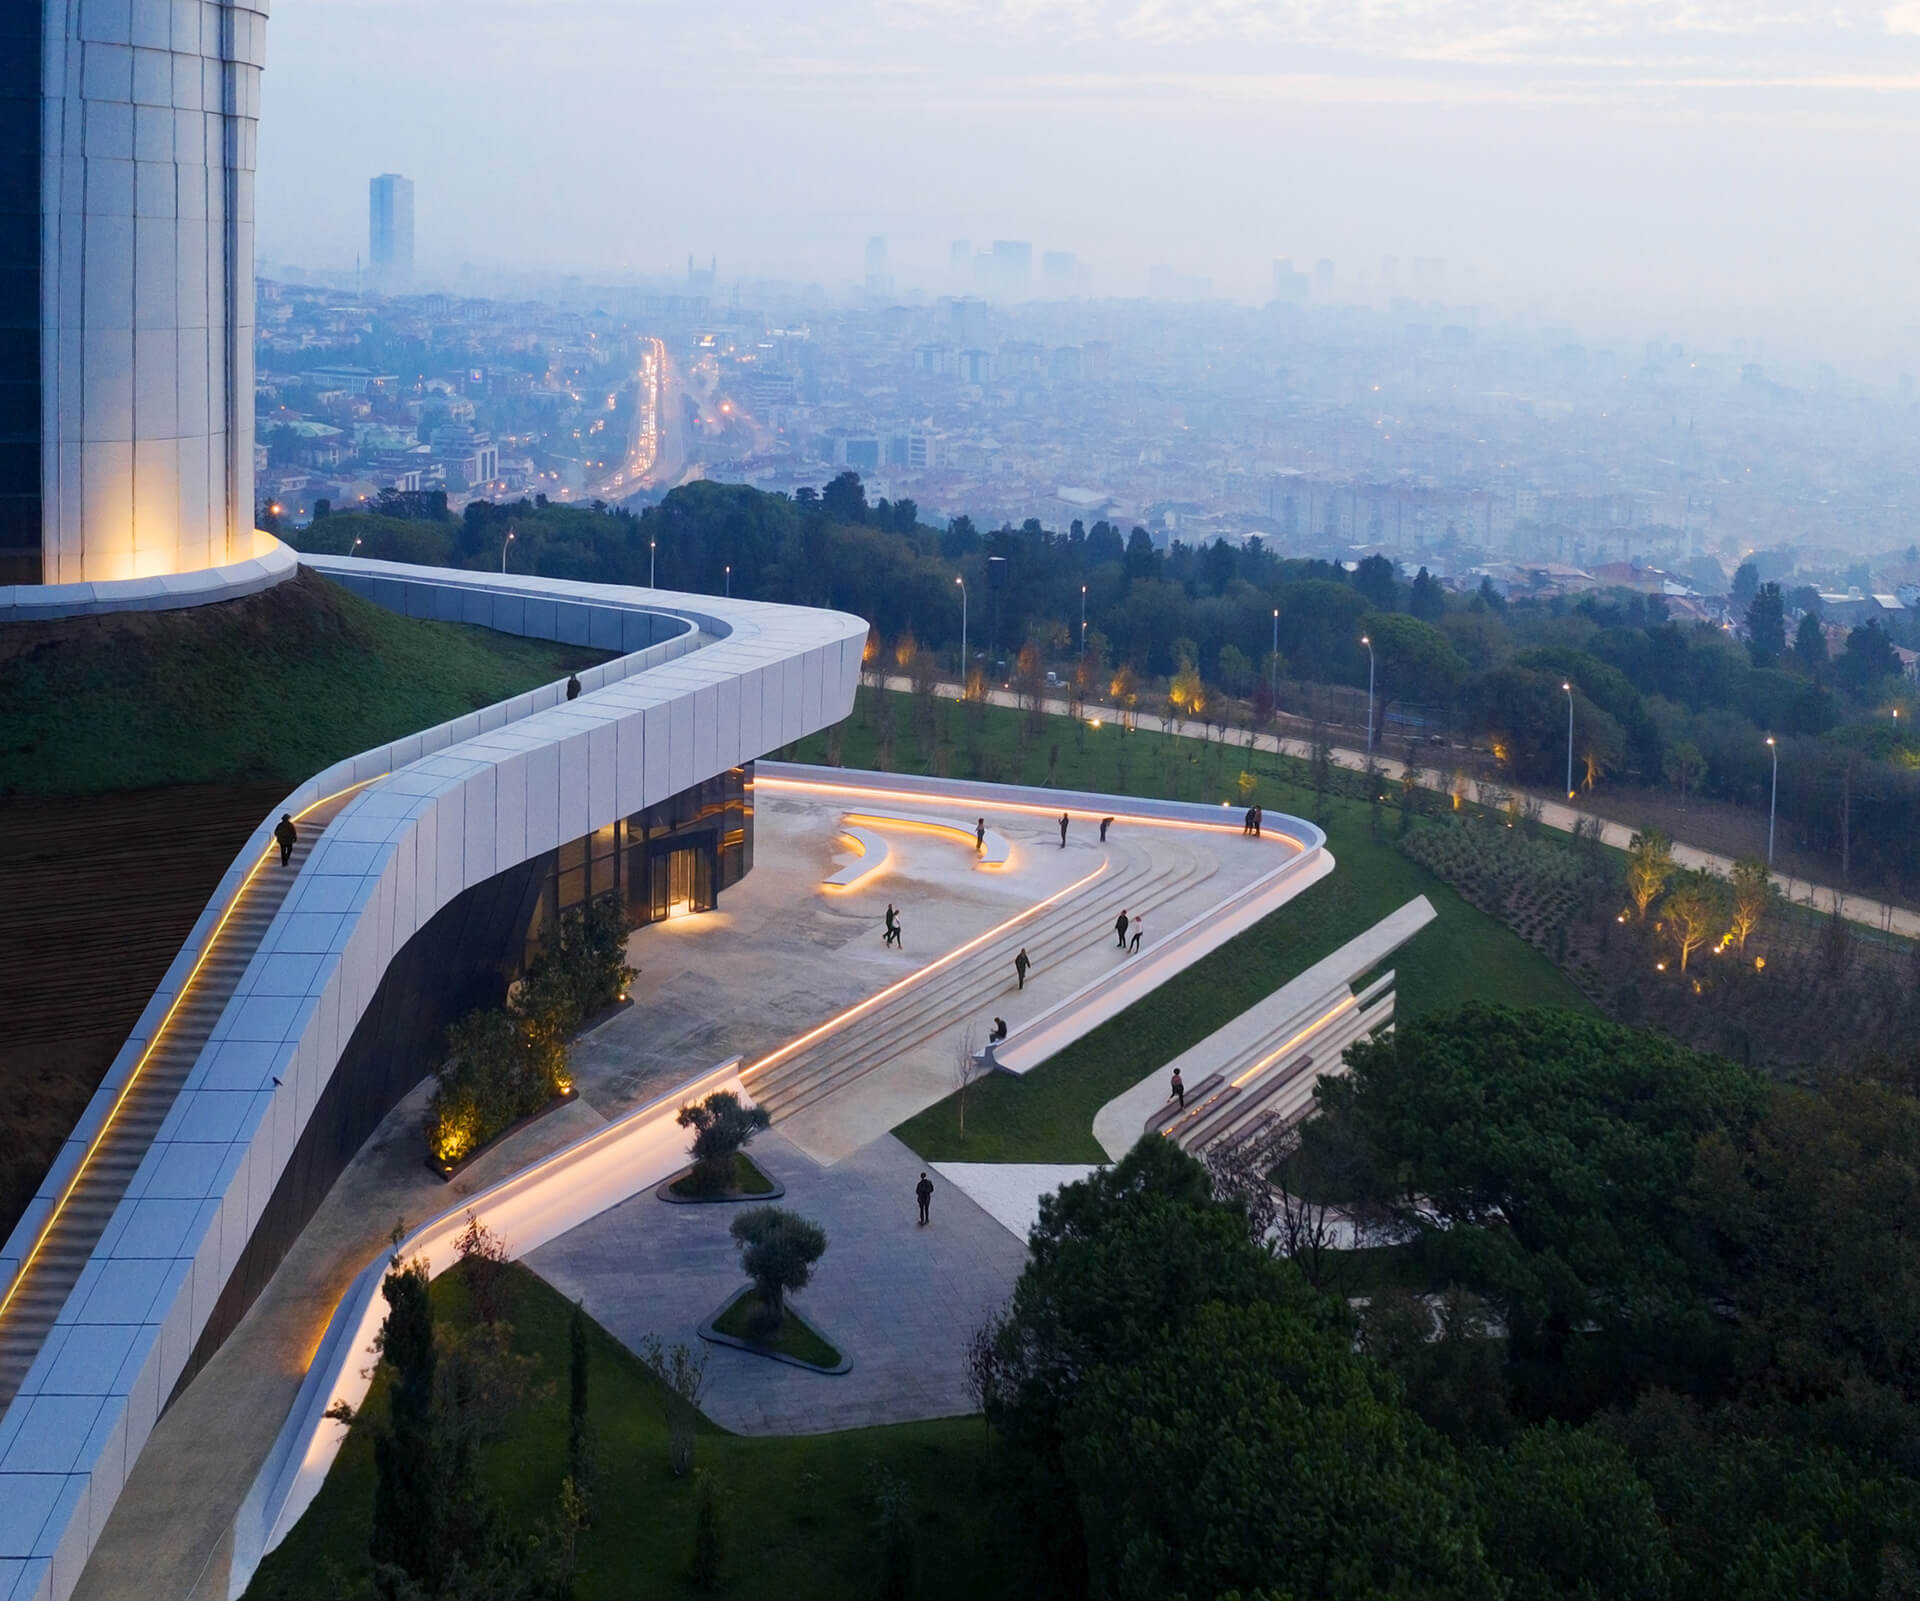 The base of the structure includes a public plaza | Istanbul Camlica TV and Radio Tower by Melike Altinisik Architects | STIRworld